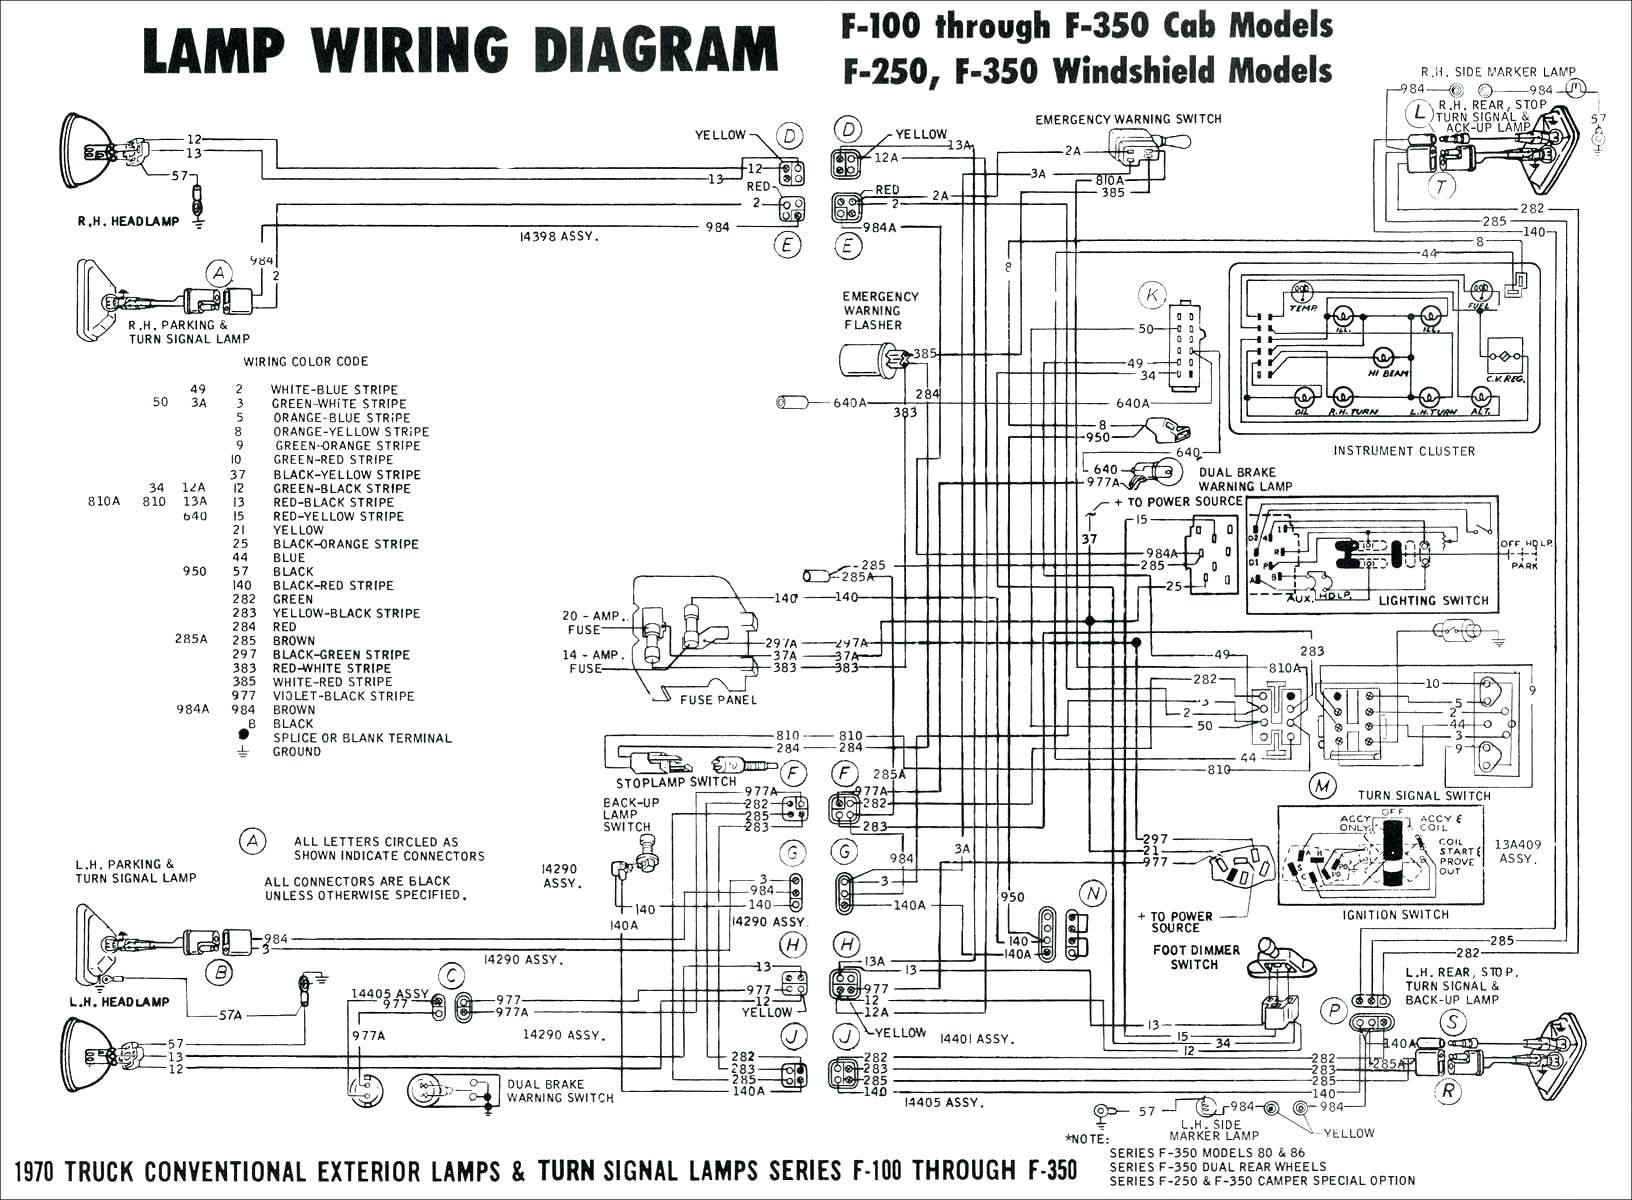 97 Honda Civic Engine Diagram 93 Civic Wiring Diagram Wiring Diagram toolbox Of 97 Honda Civic Engine Diagram 97 Honda Accord Engine Diagram